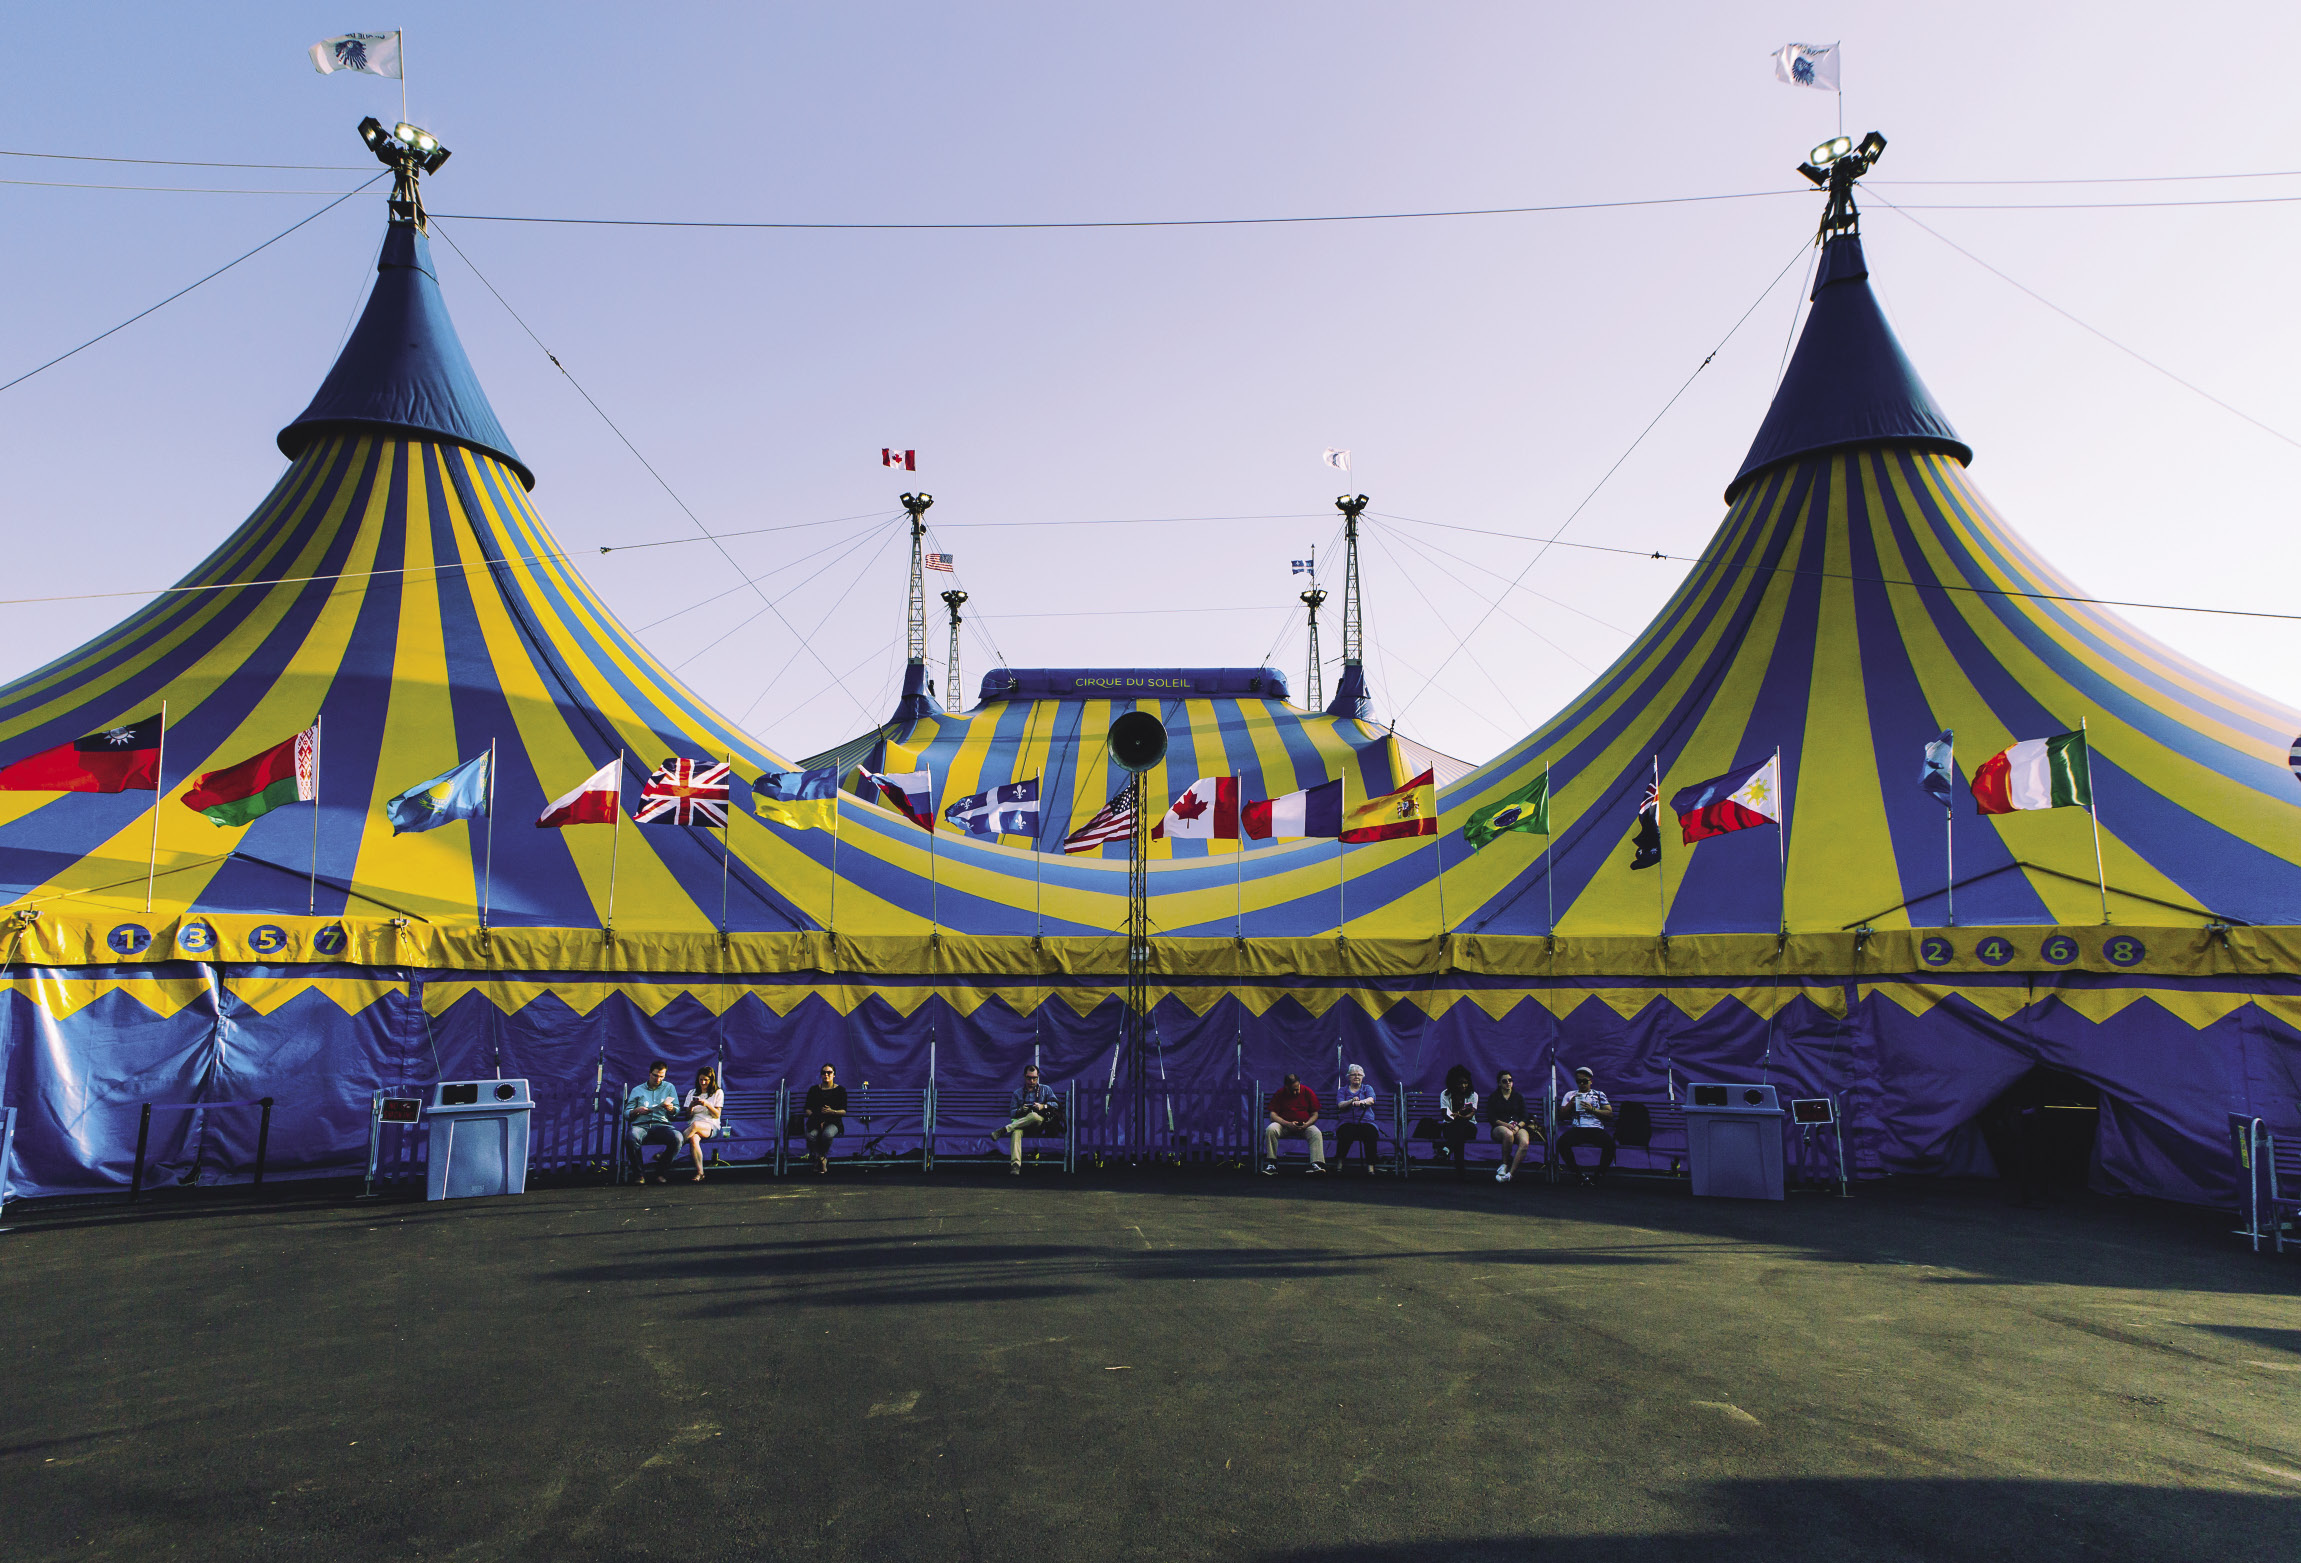 Audiences access the complex through the entrance tent in foreground which includes ticketing & NFPA Journal - Cirque July August 2016